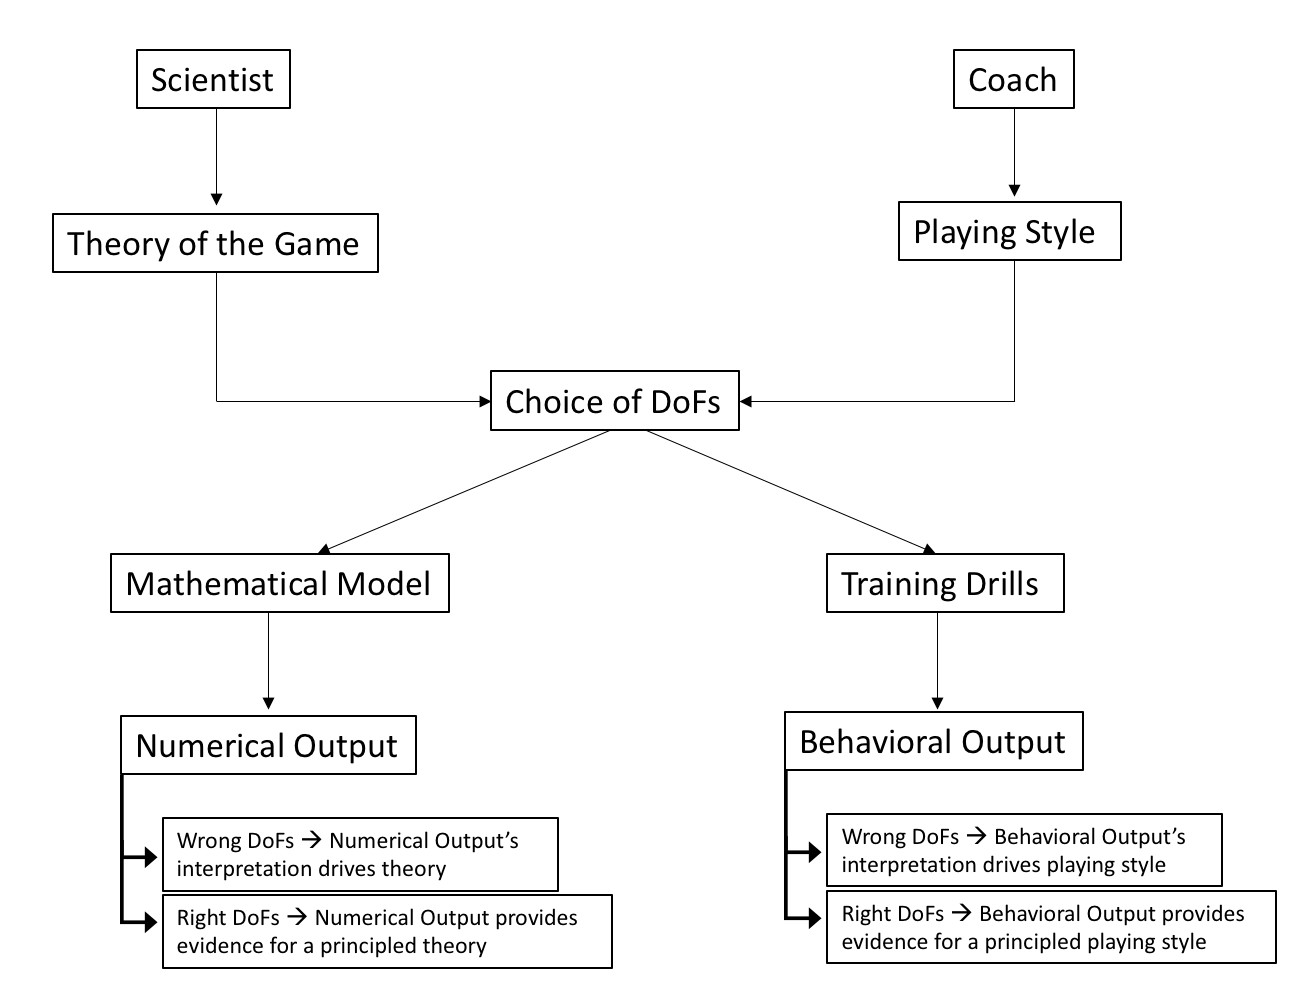 Figure 1. It represents the similar challenges that scientists and coaches have to face to work on the system of interest. In both cases, the incorrect choice of the degrees of freedom will radically change the output (i.e., numerical or behavioral) forcing (slaving) the scientist or coach to comprehend the output based on their choice of DoFs rather than serving as evidence for testable predictions of a principled theory/playing style.